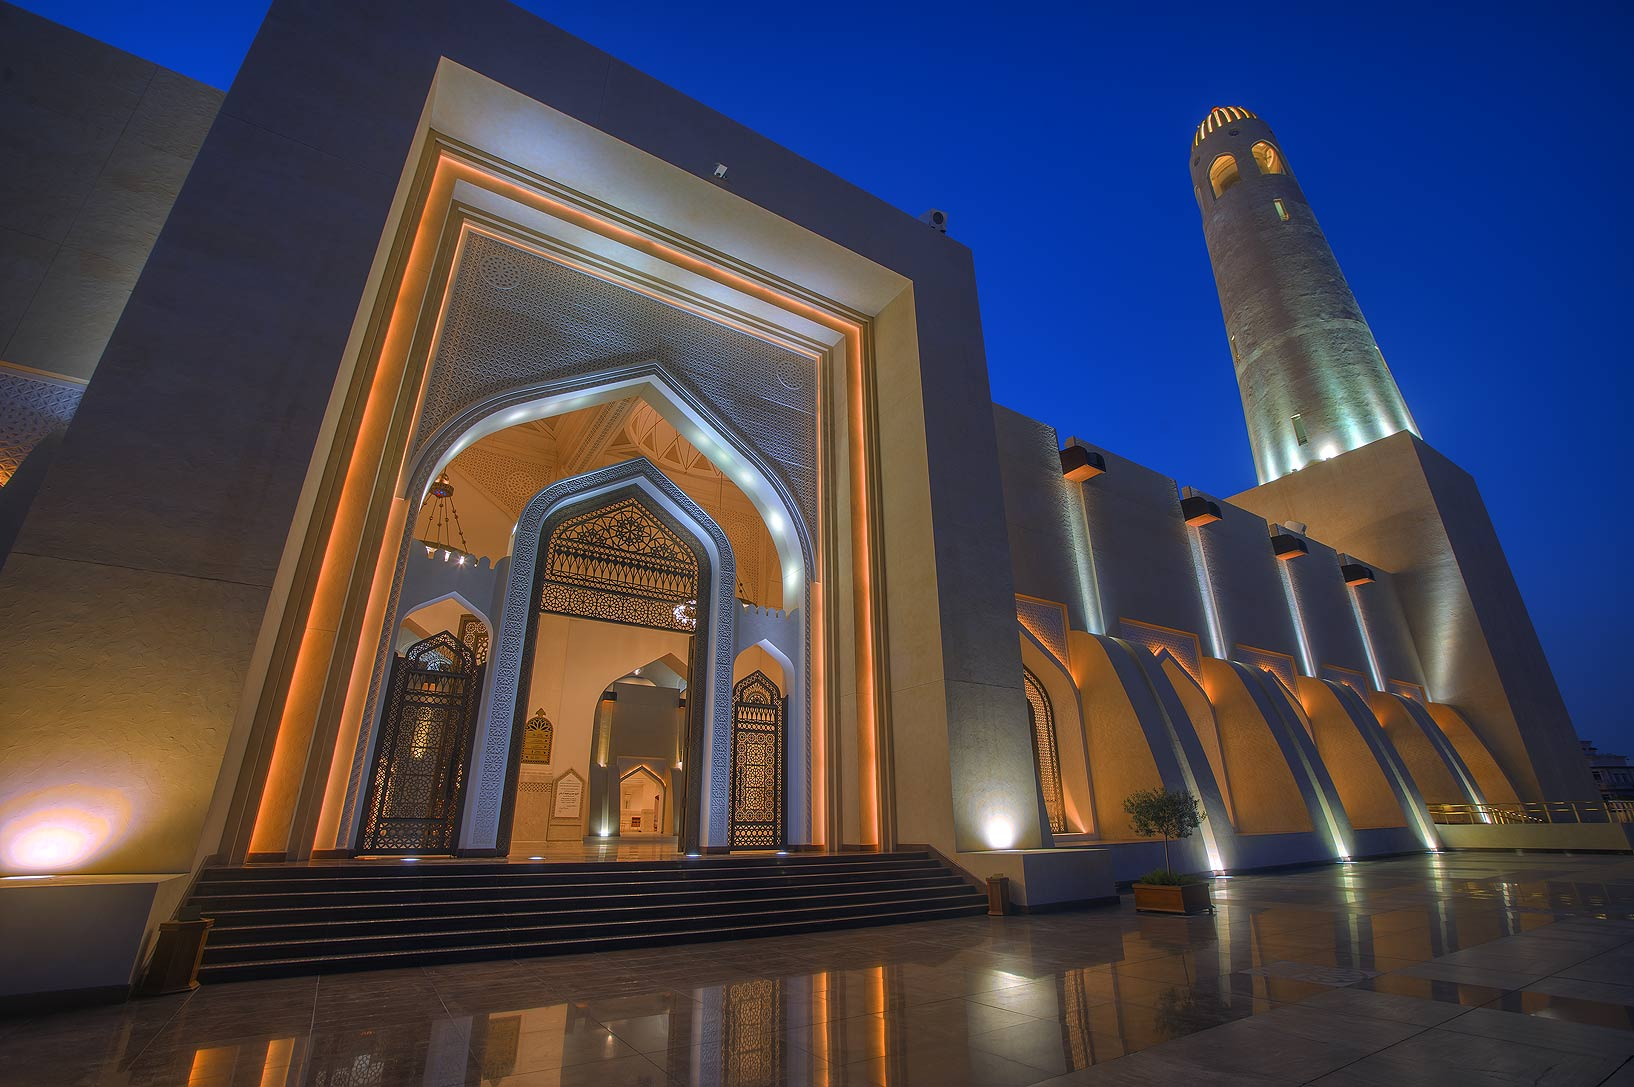 Gate of State Mosque (Sheikh Imam Muhammad Ibn Abdul Wahhab Mosque). Doha, Qatar